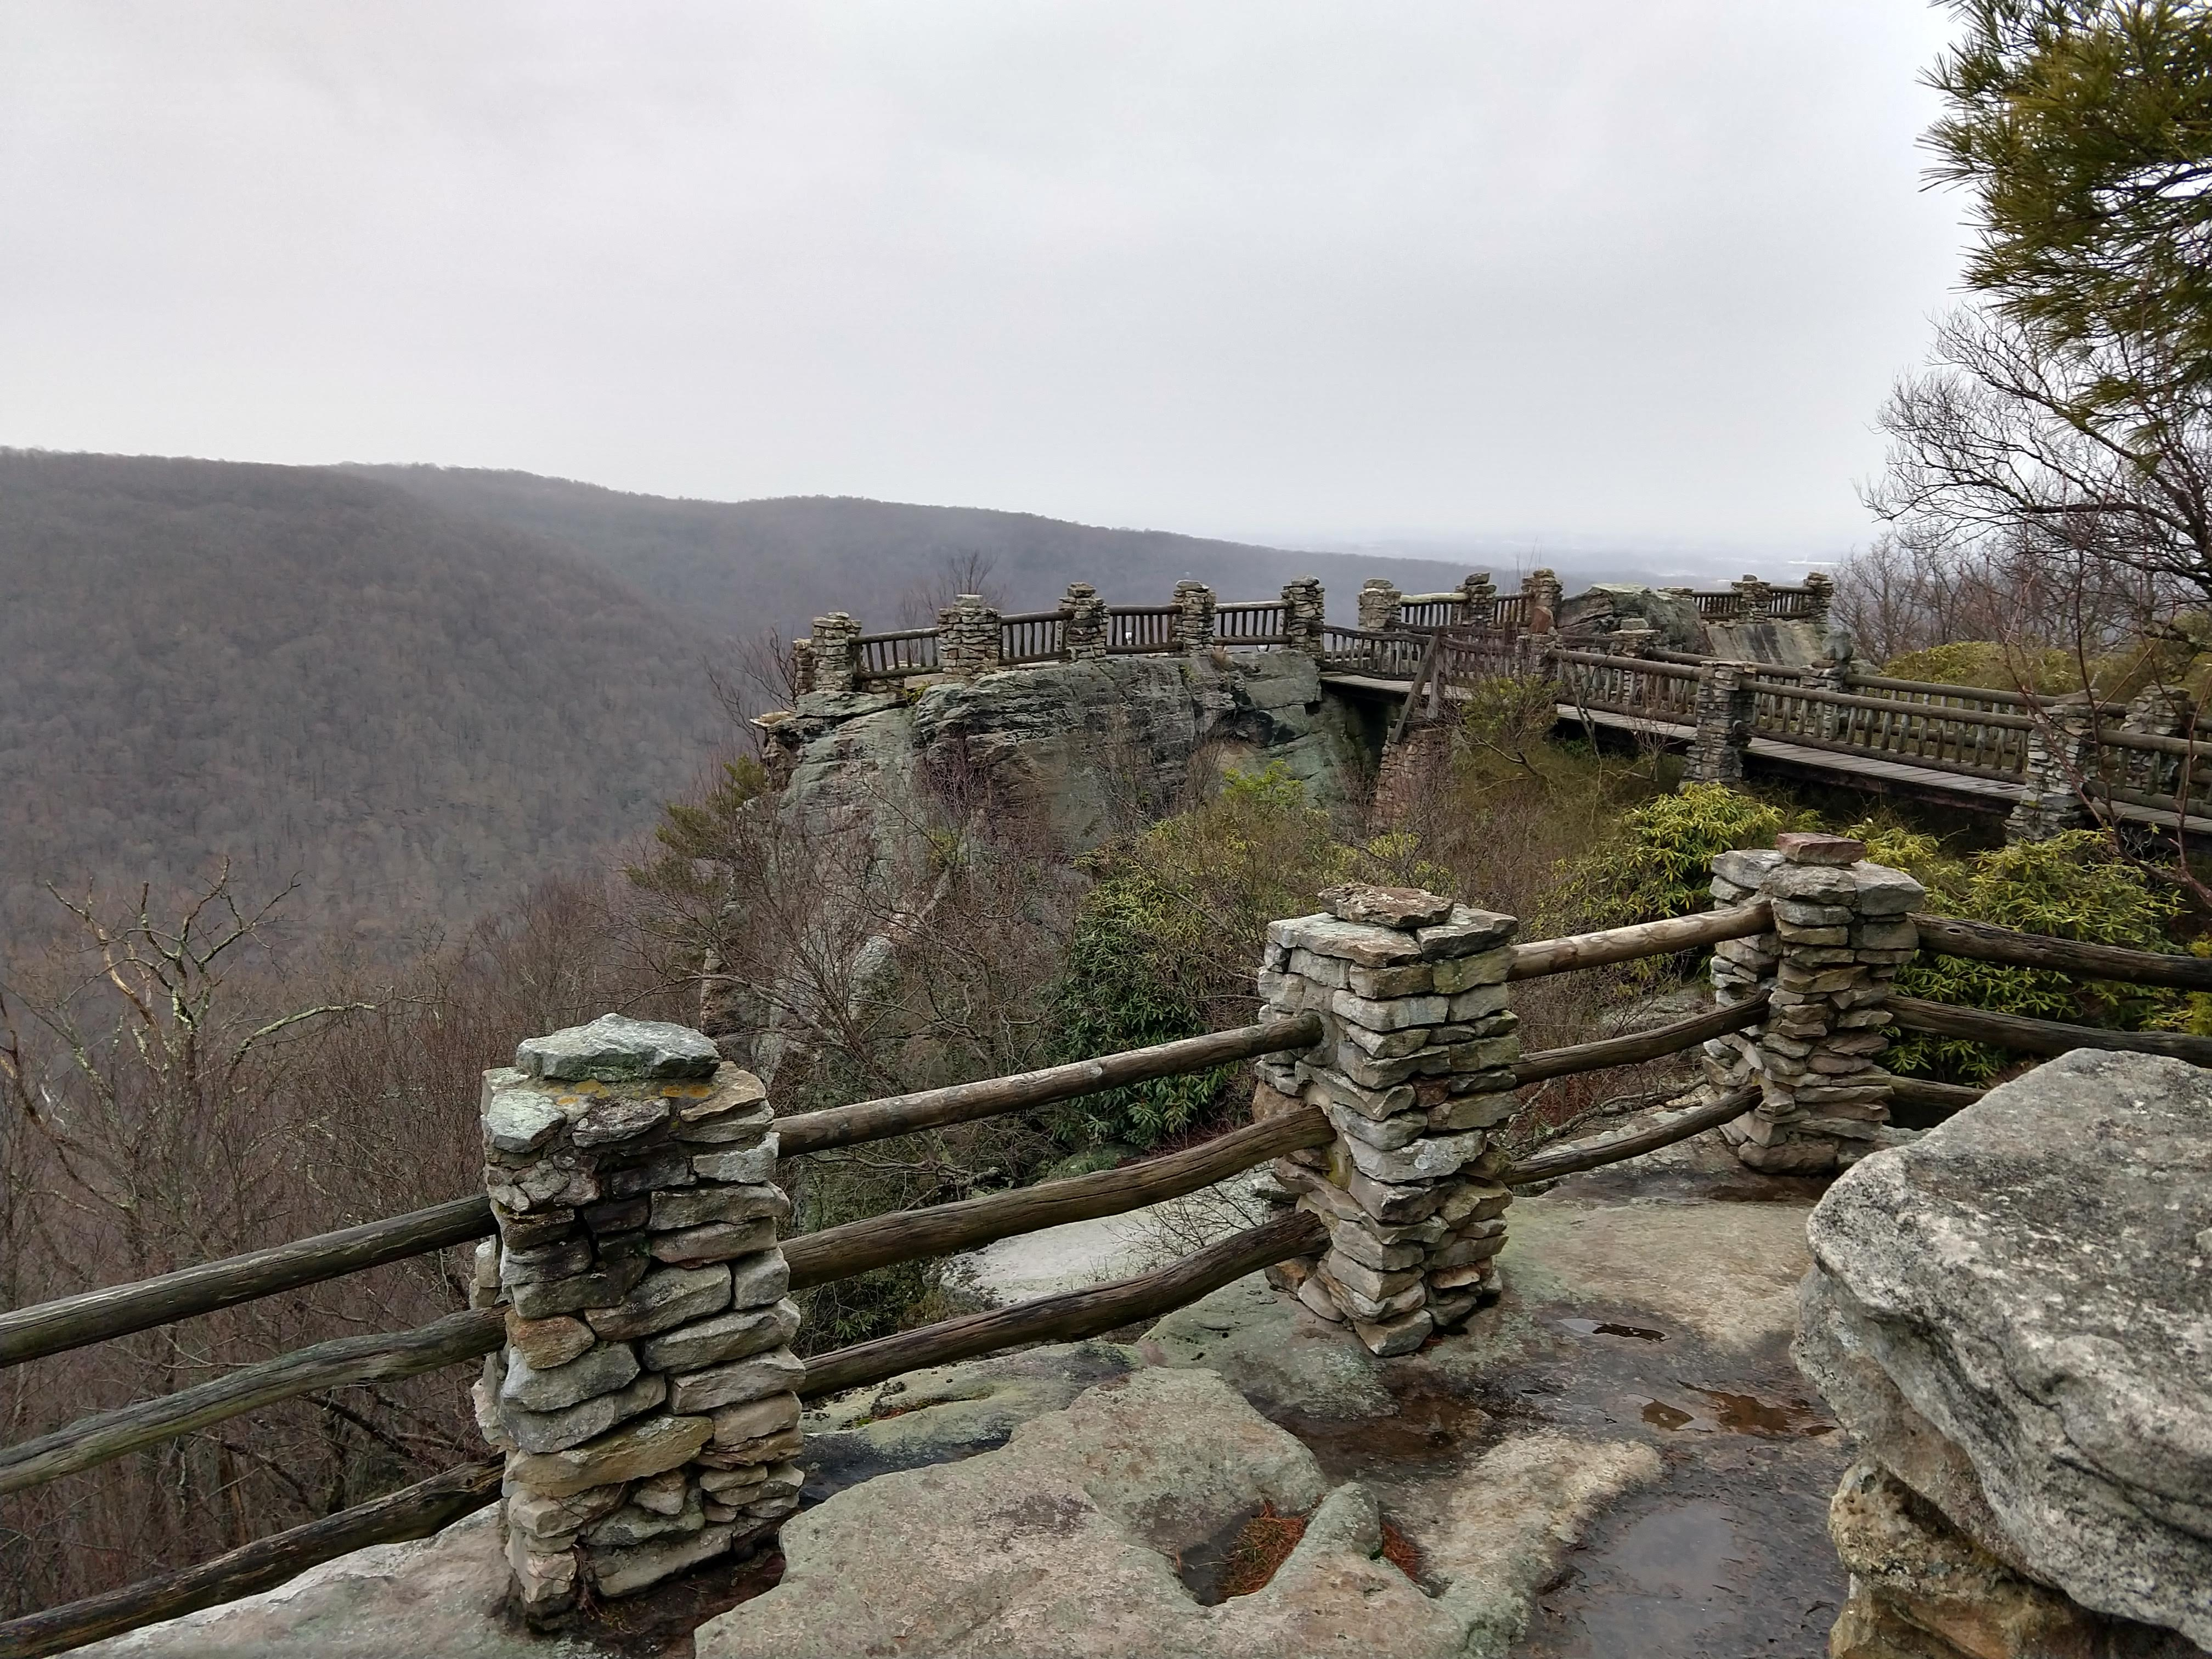 Overlook at Cooper's Rock State Forest in winter